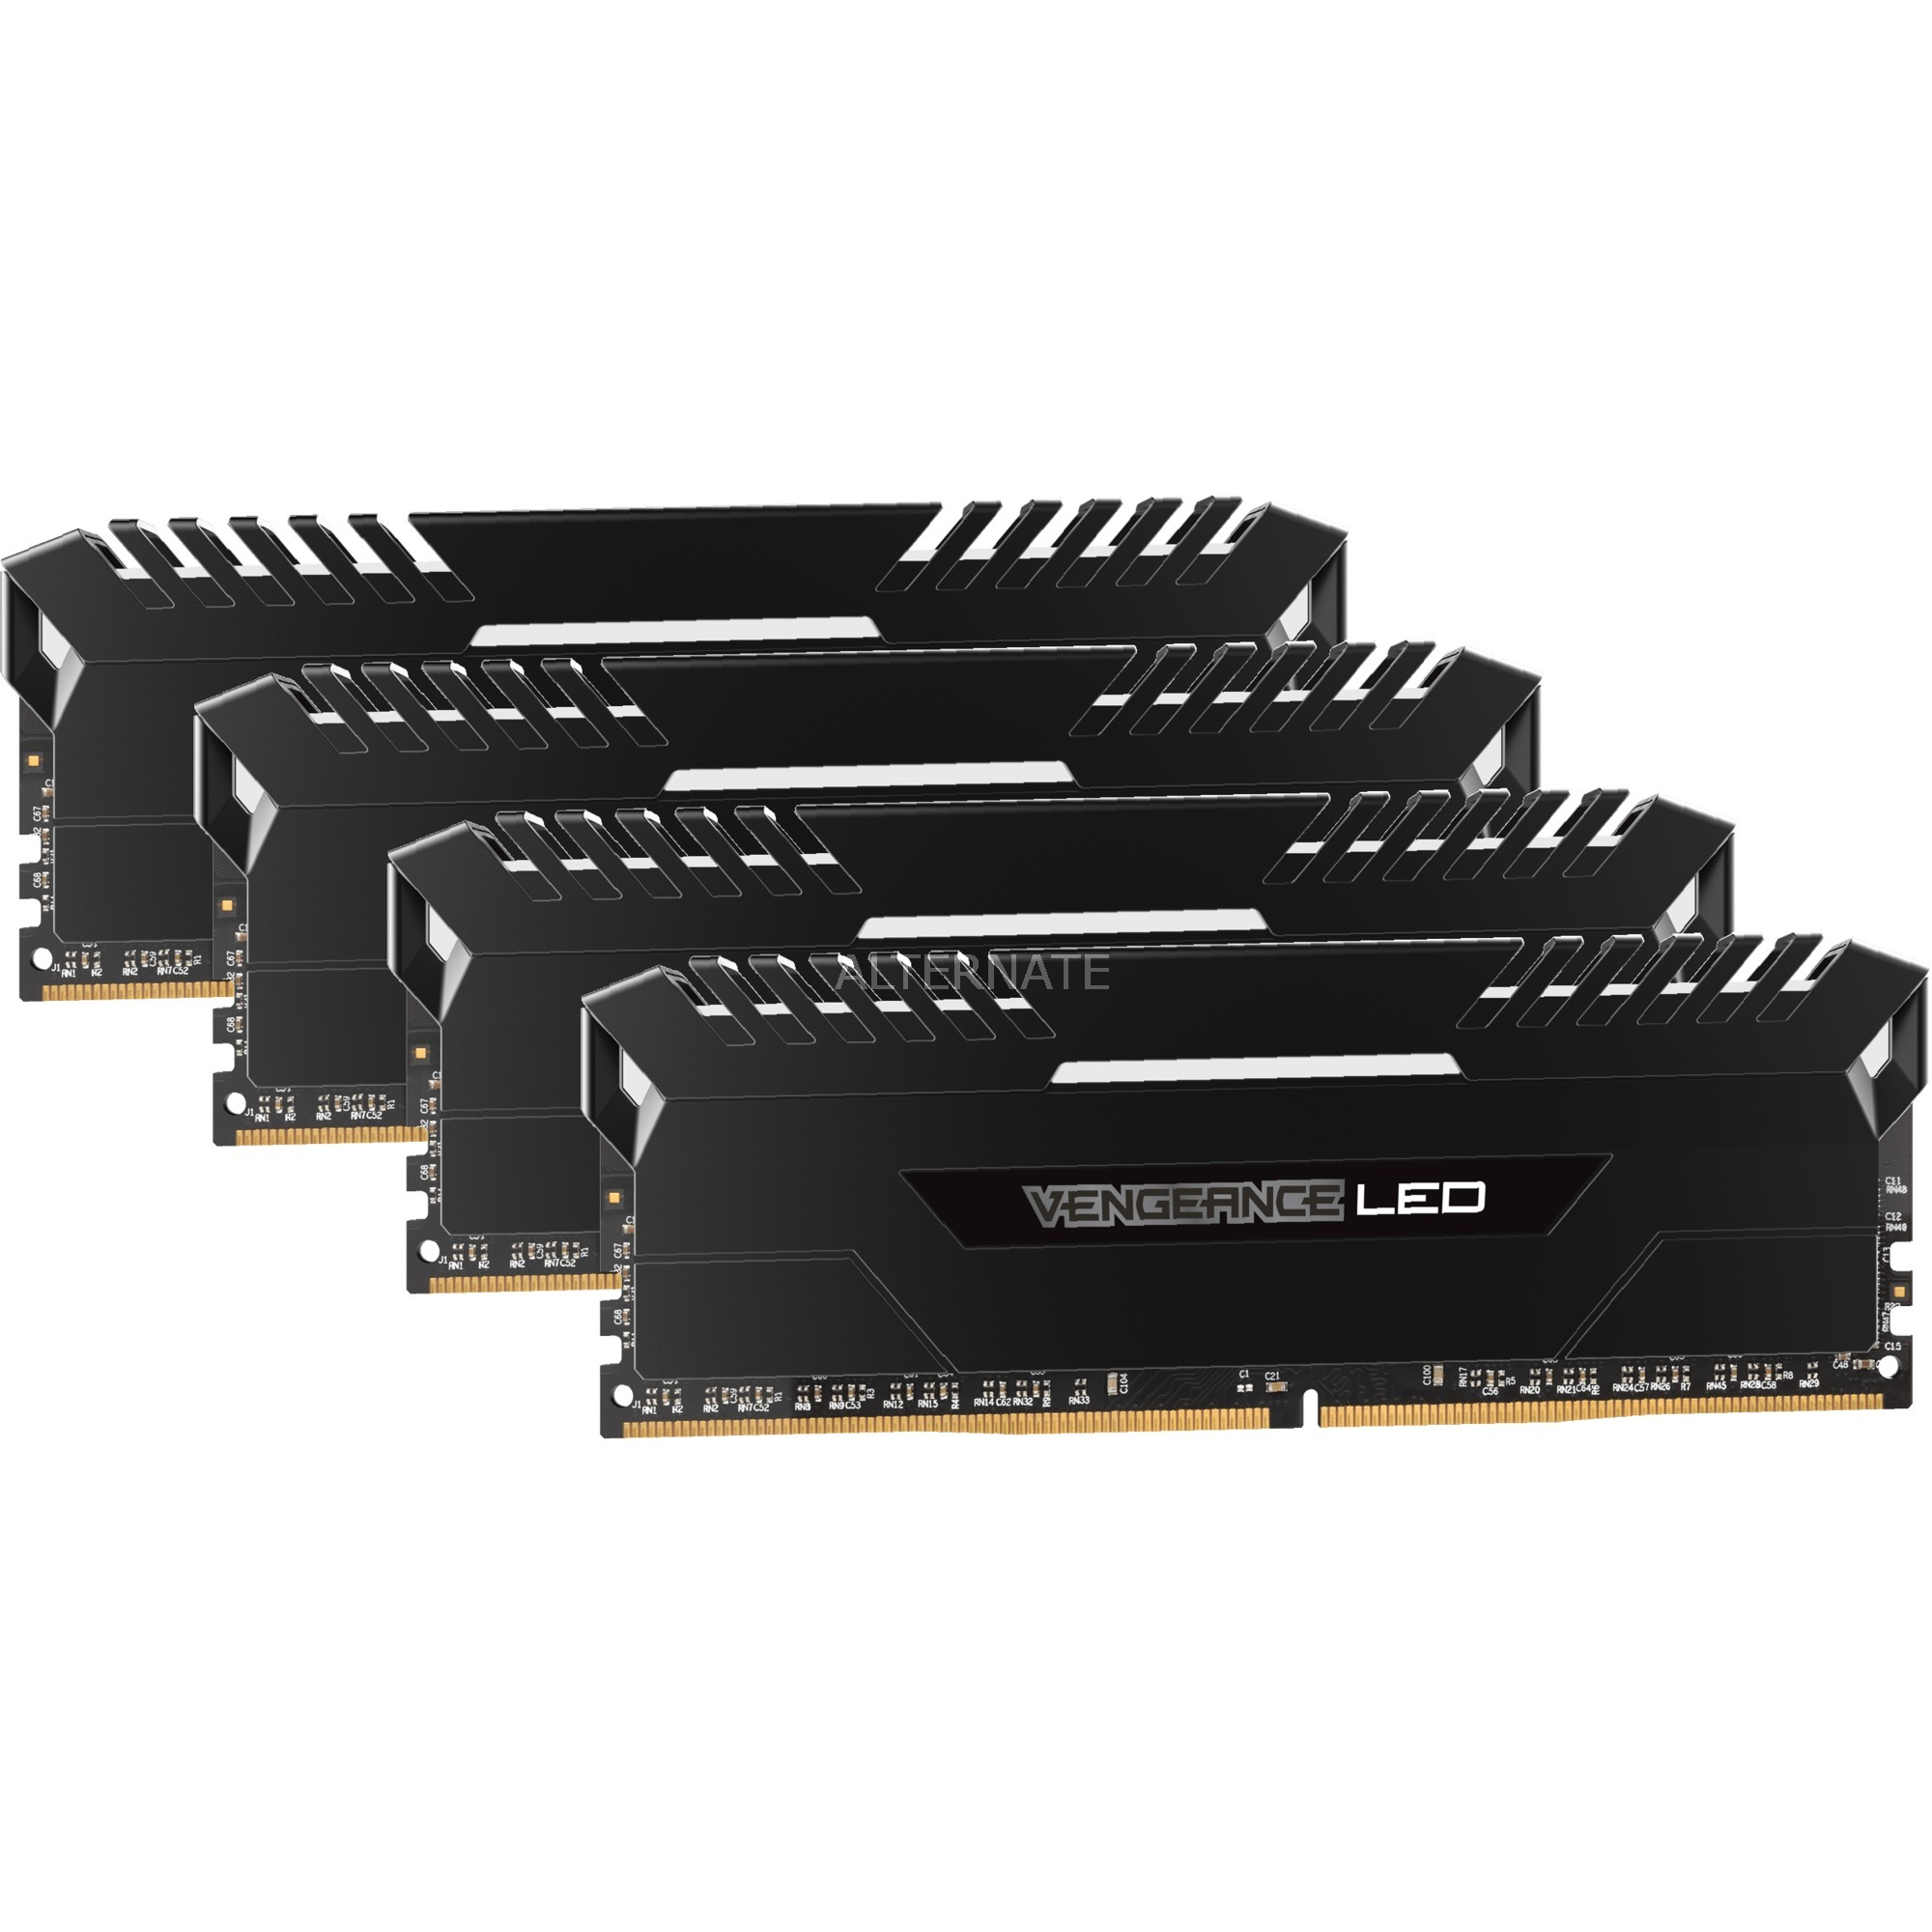 Vengeance LED Series 32 Go (4x 8 Go) DDR4 3000 MHz CL15, Mémoire